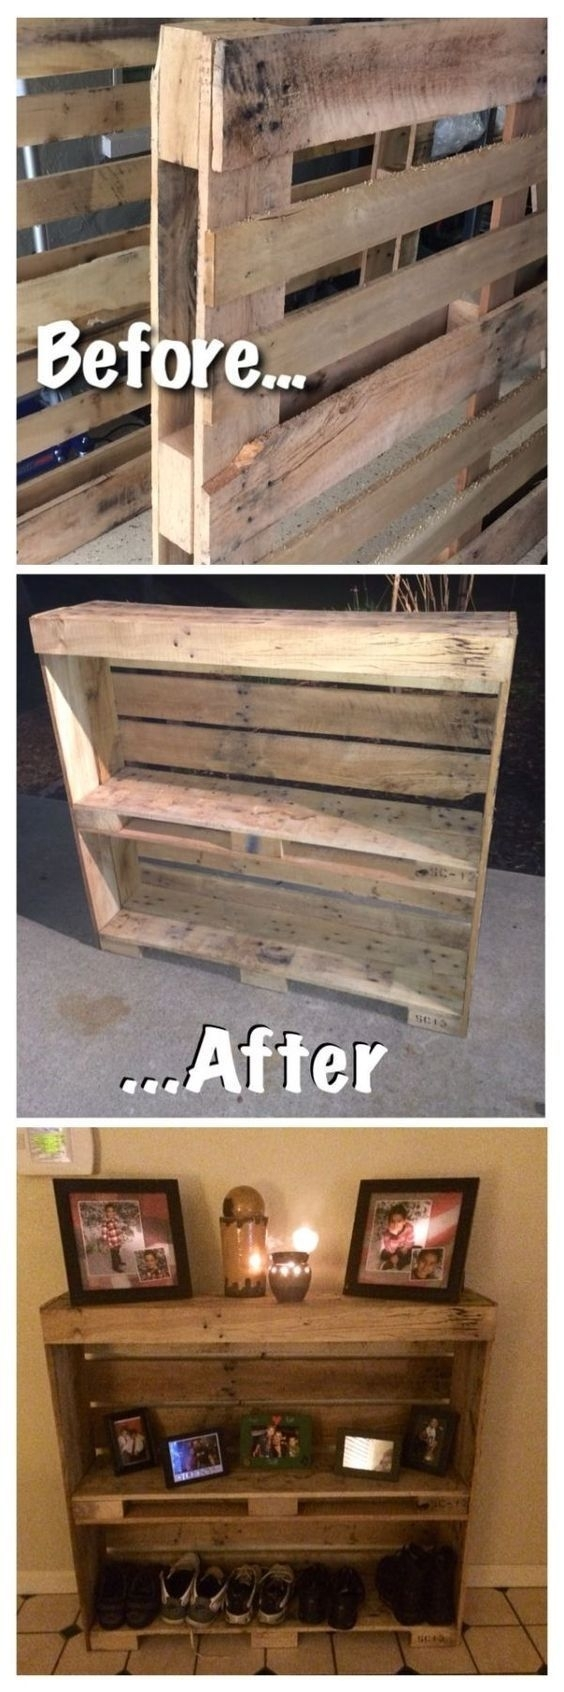 216 Best |Pallets| Images On Pinterest | Pallet Ideas, Pallet Intended For Most Popular Wall Accents Made From Pallets (View 2 of 15)